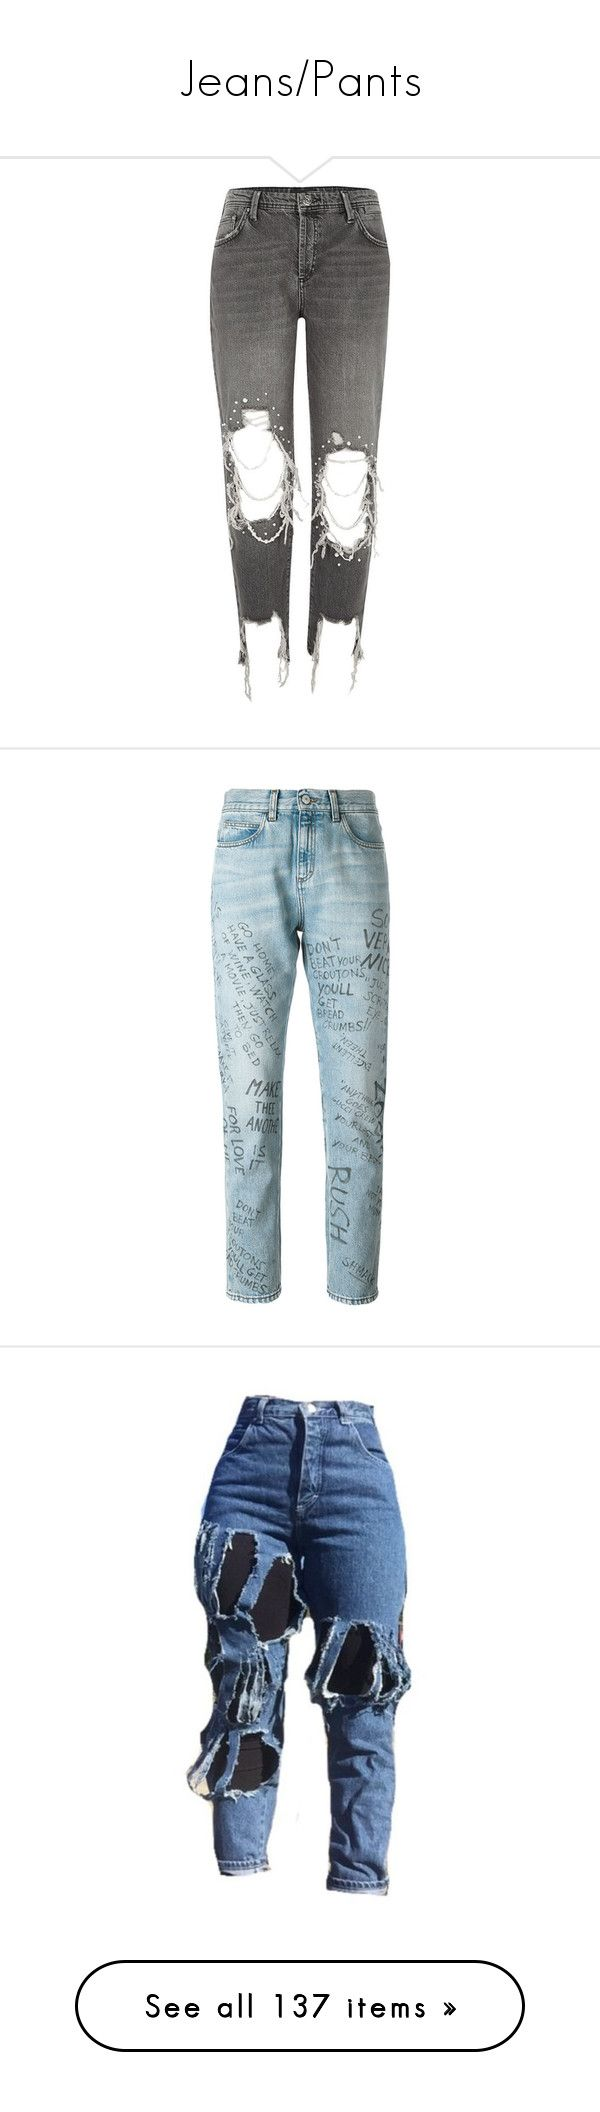 """Jeans/Pants"" by baaby-dooll ❤ liked on Polyvore featuring jeans, pants, bottoms, pants and leggings, black, boyfriend / slouch jeans, women, boyfriend fit jeans, tall boyfriend jeans and embellished jeans"